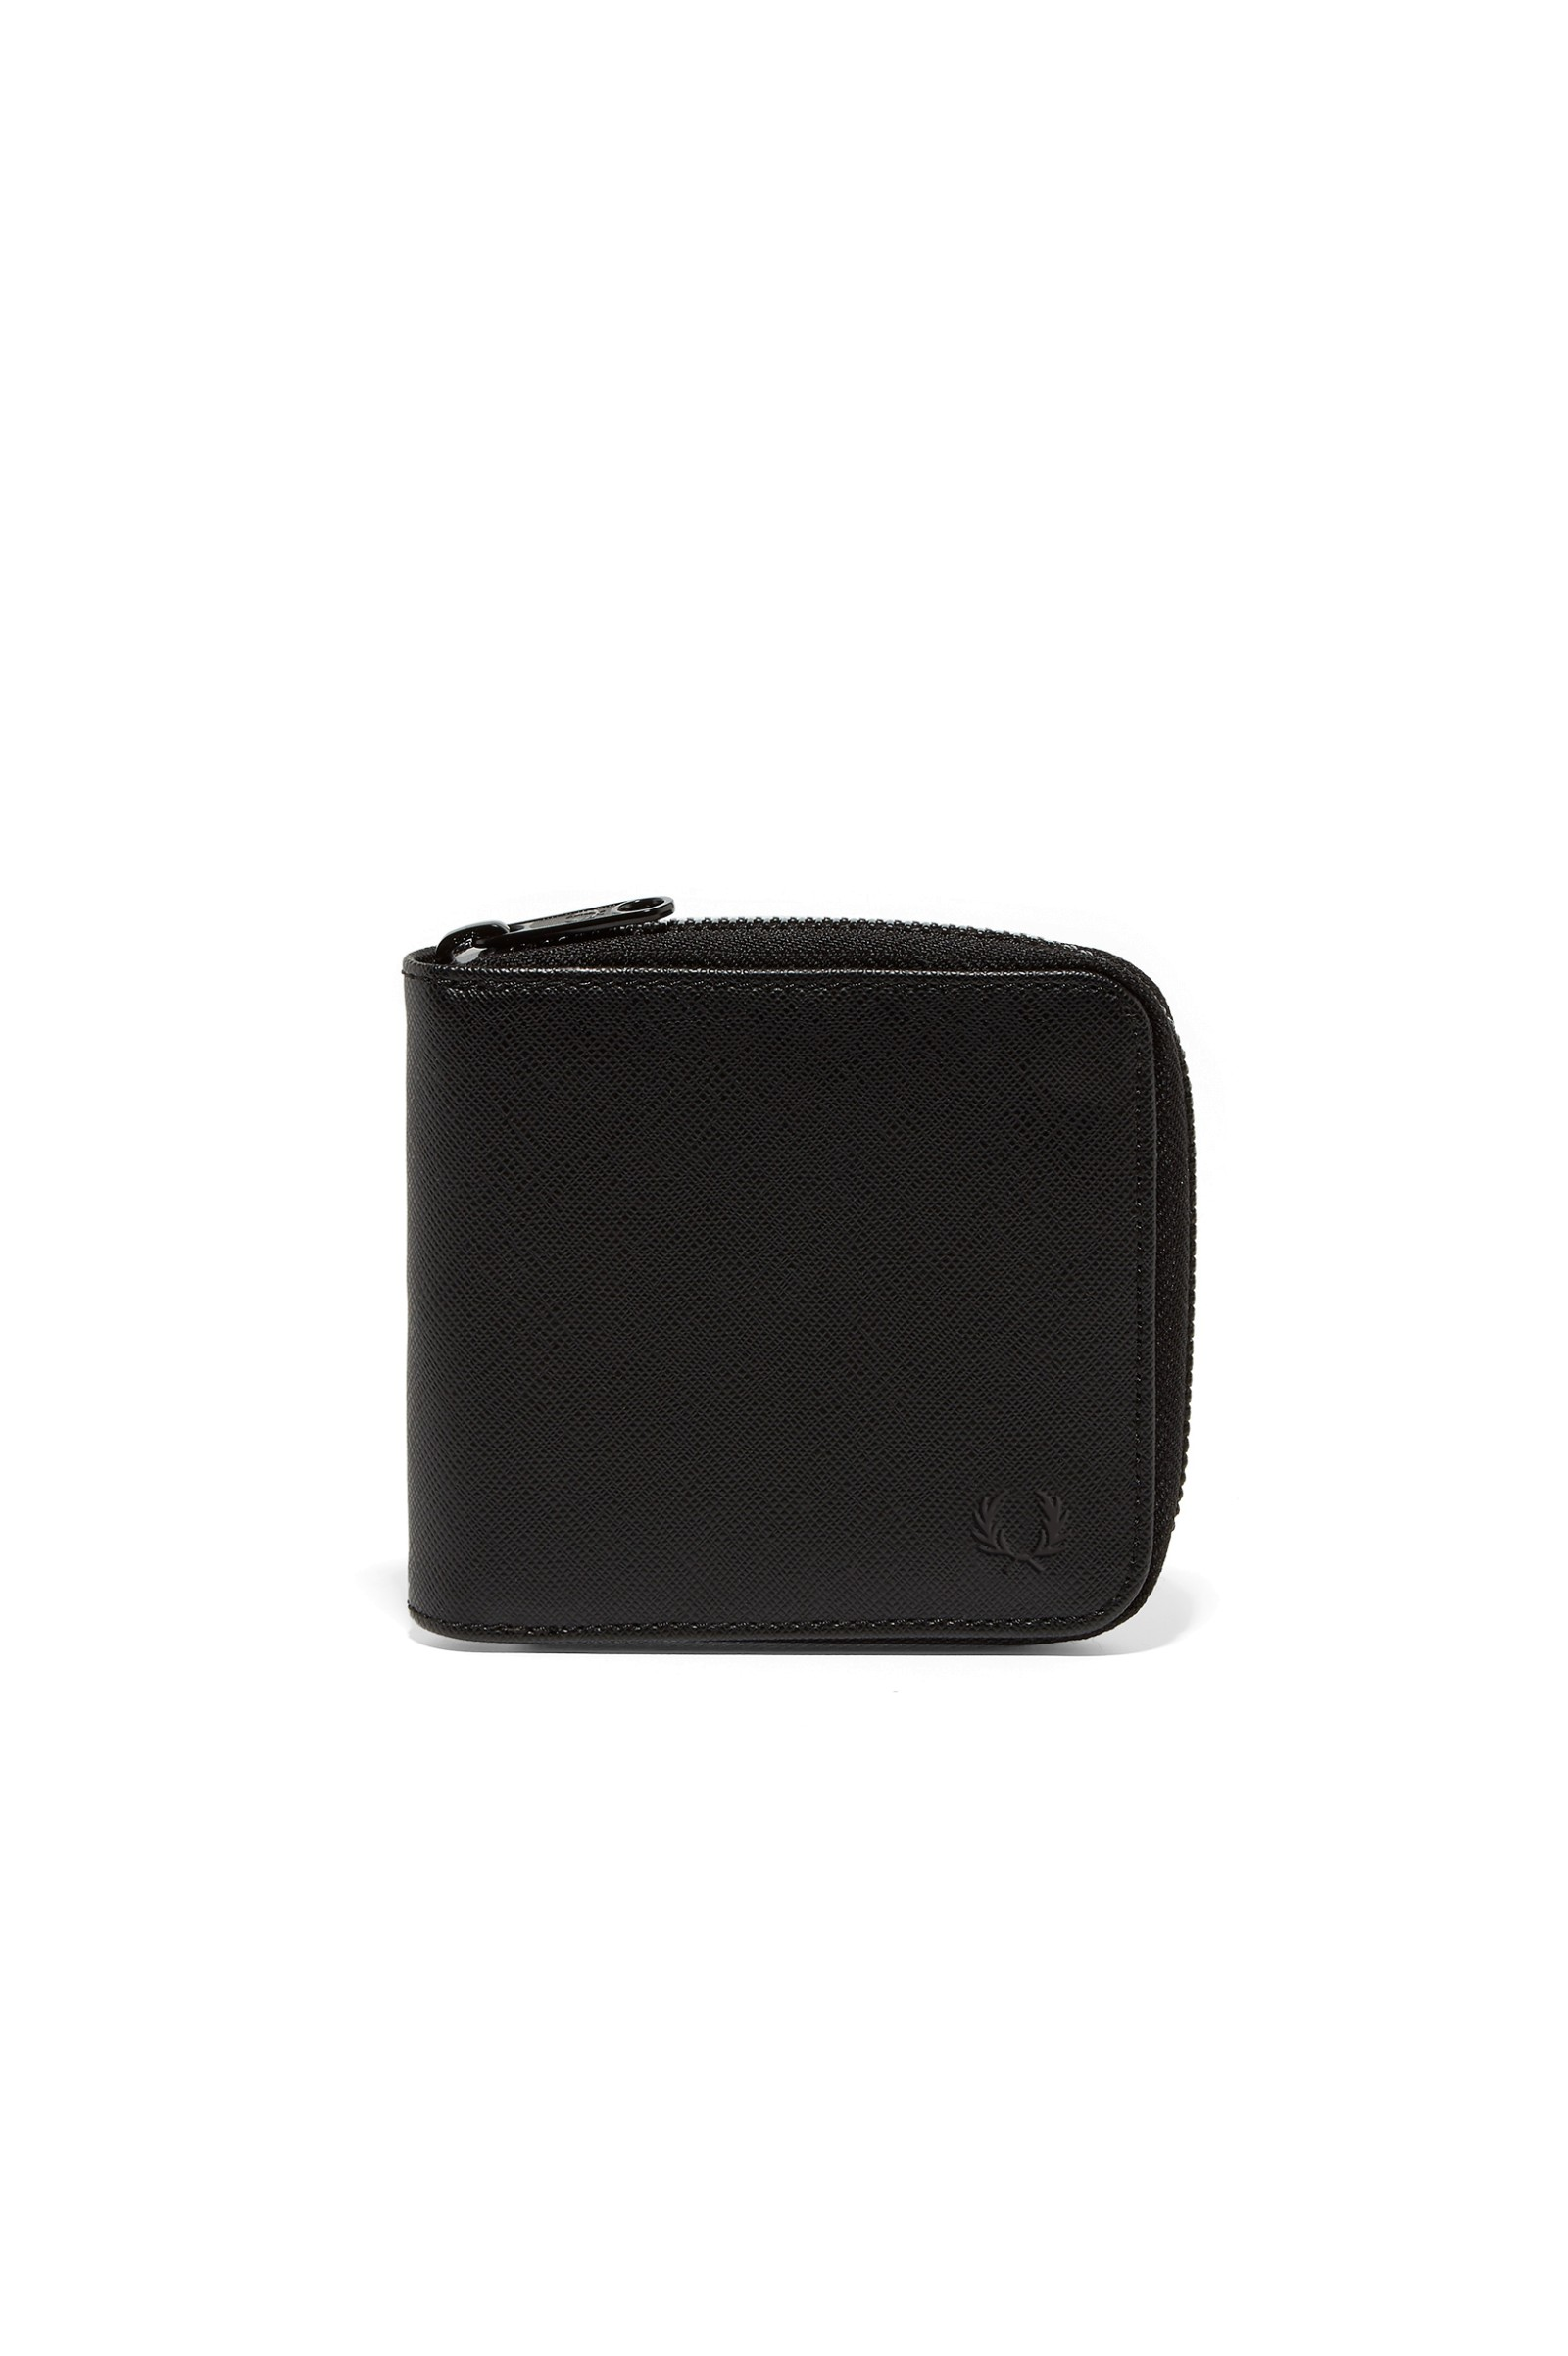 Fred Perry Saffiano Zip Around Wallet